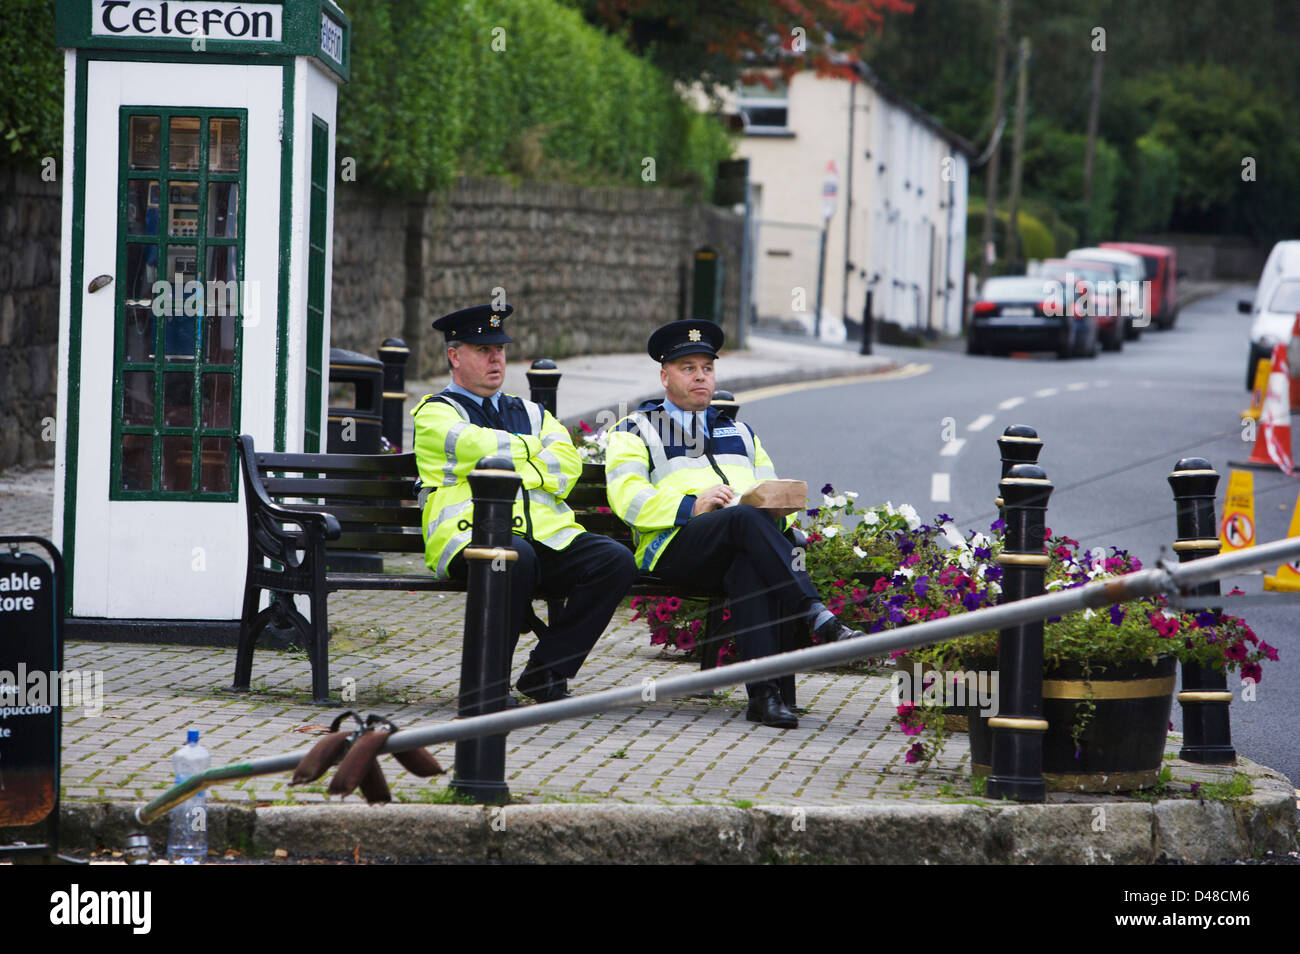 Two Irish Gardai sitting on a park bench in the picturesque village of Enniskerry in Wicklow Ireland Stock Photo